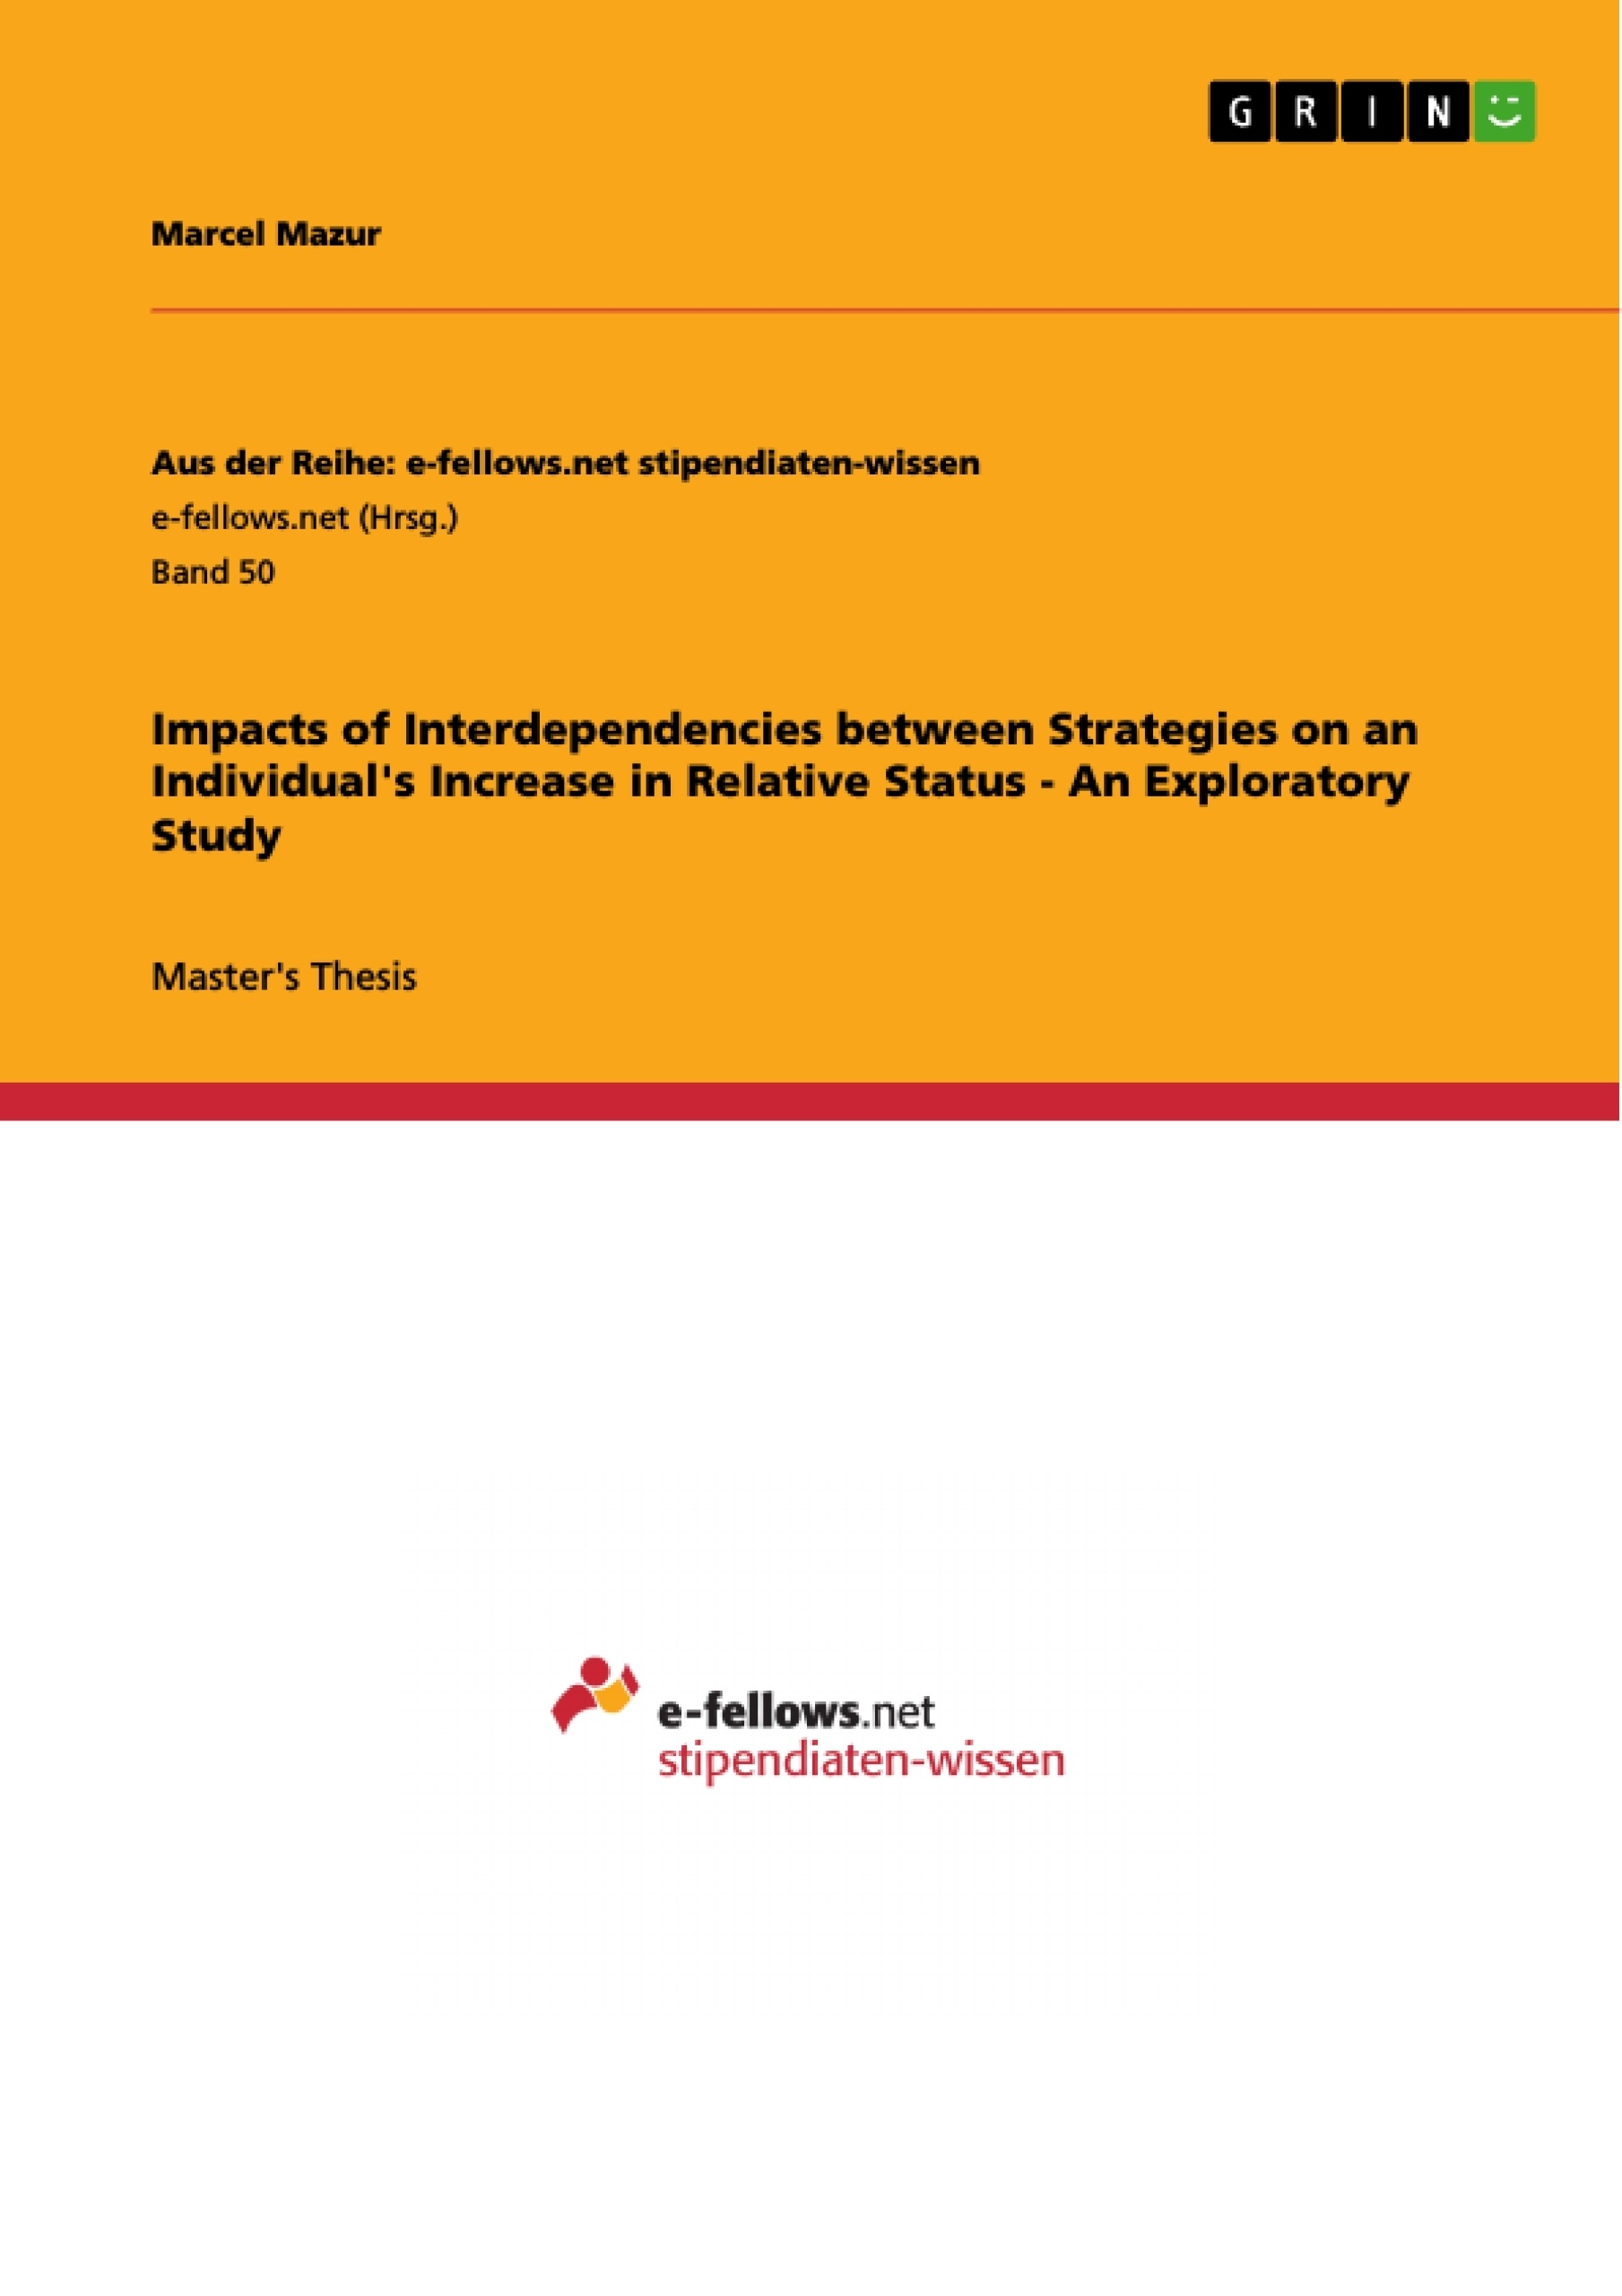 Title: Impacts of Interdependencies between Strategies on an Individual's Increase in Relative Status - An Exploratory Study